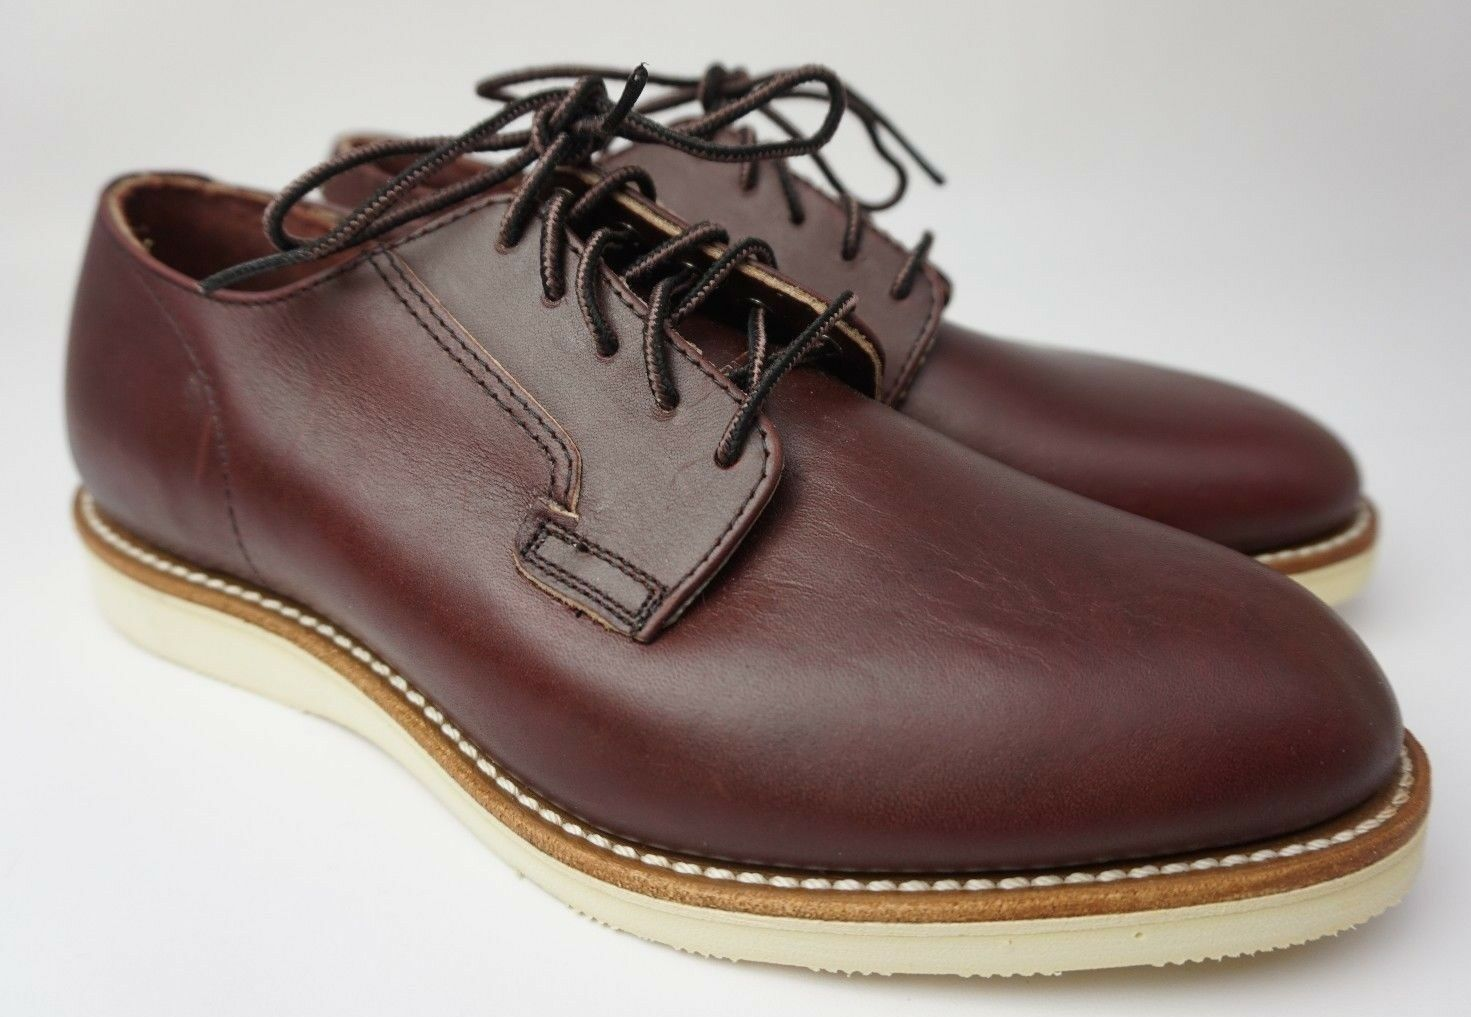 Red Wing Postman 3117 Oxford Merlot Burgundy Leather shoes Size US 8 D